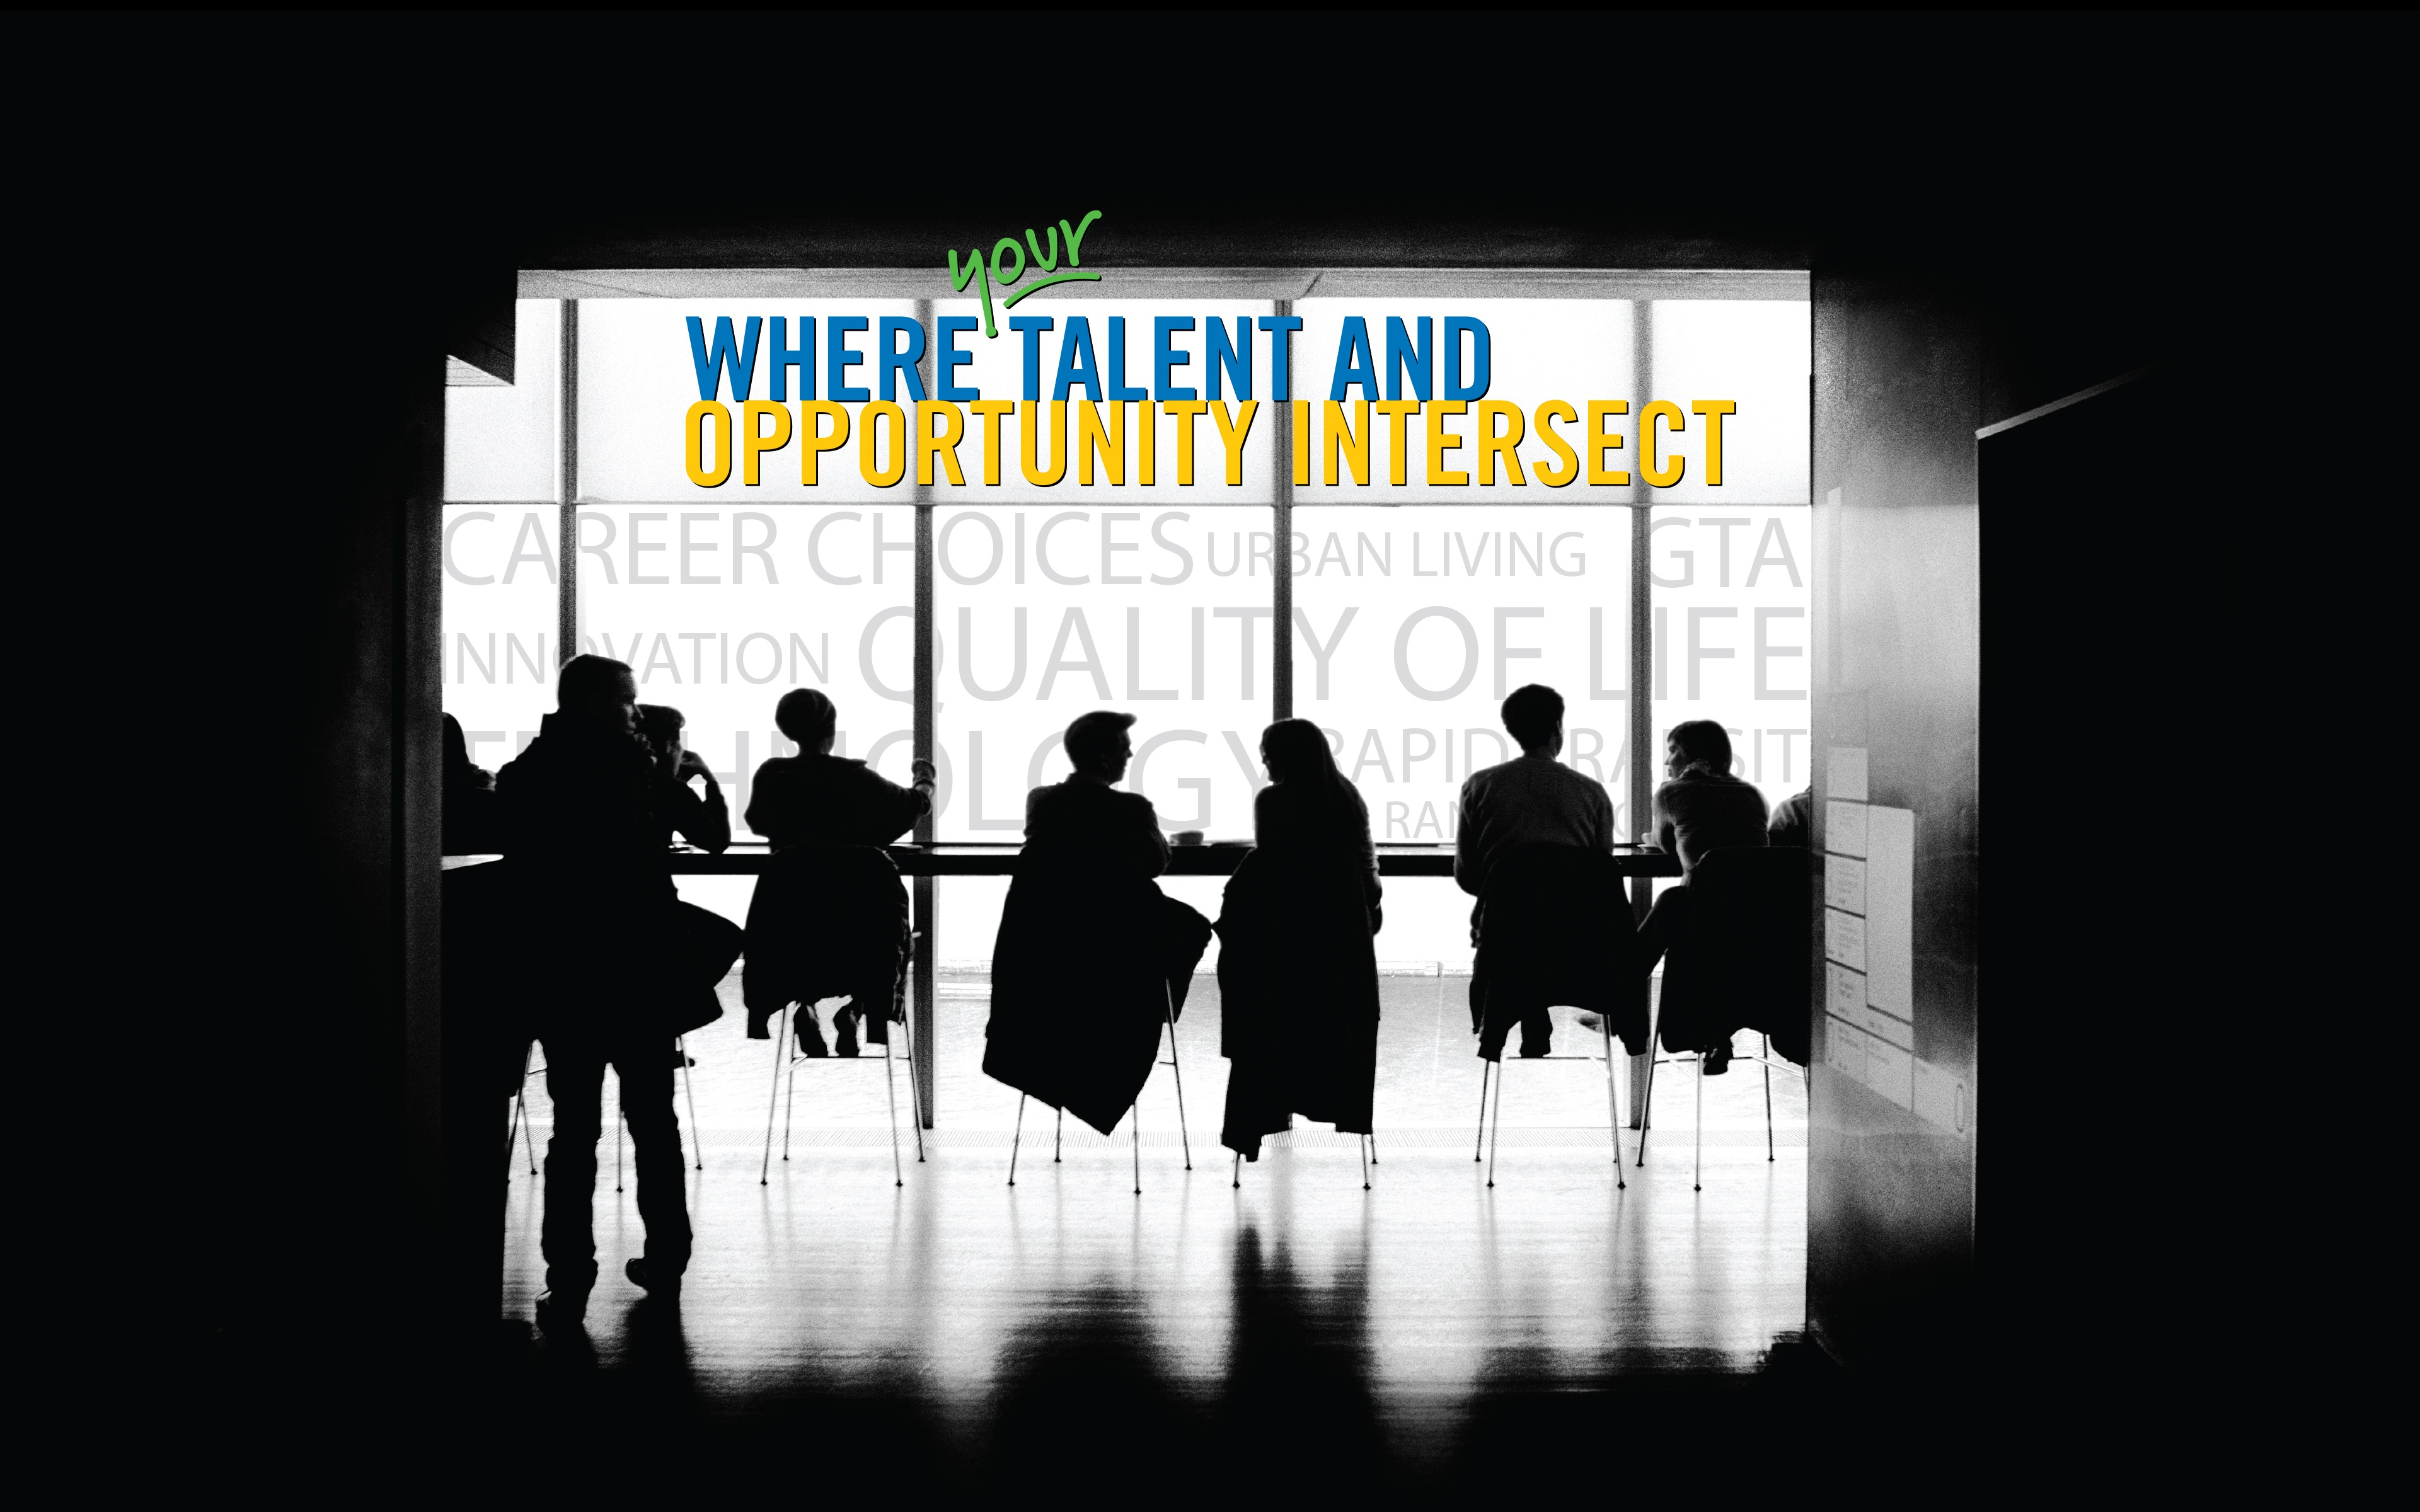 Where Your Talent And Opportunity Intersect